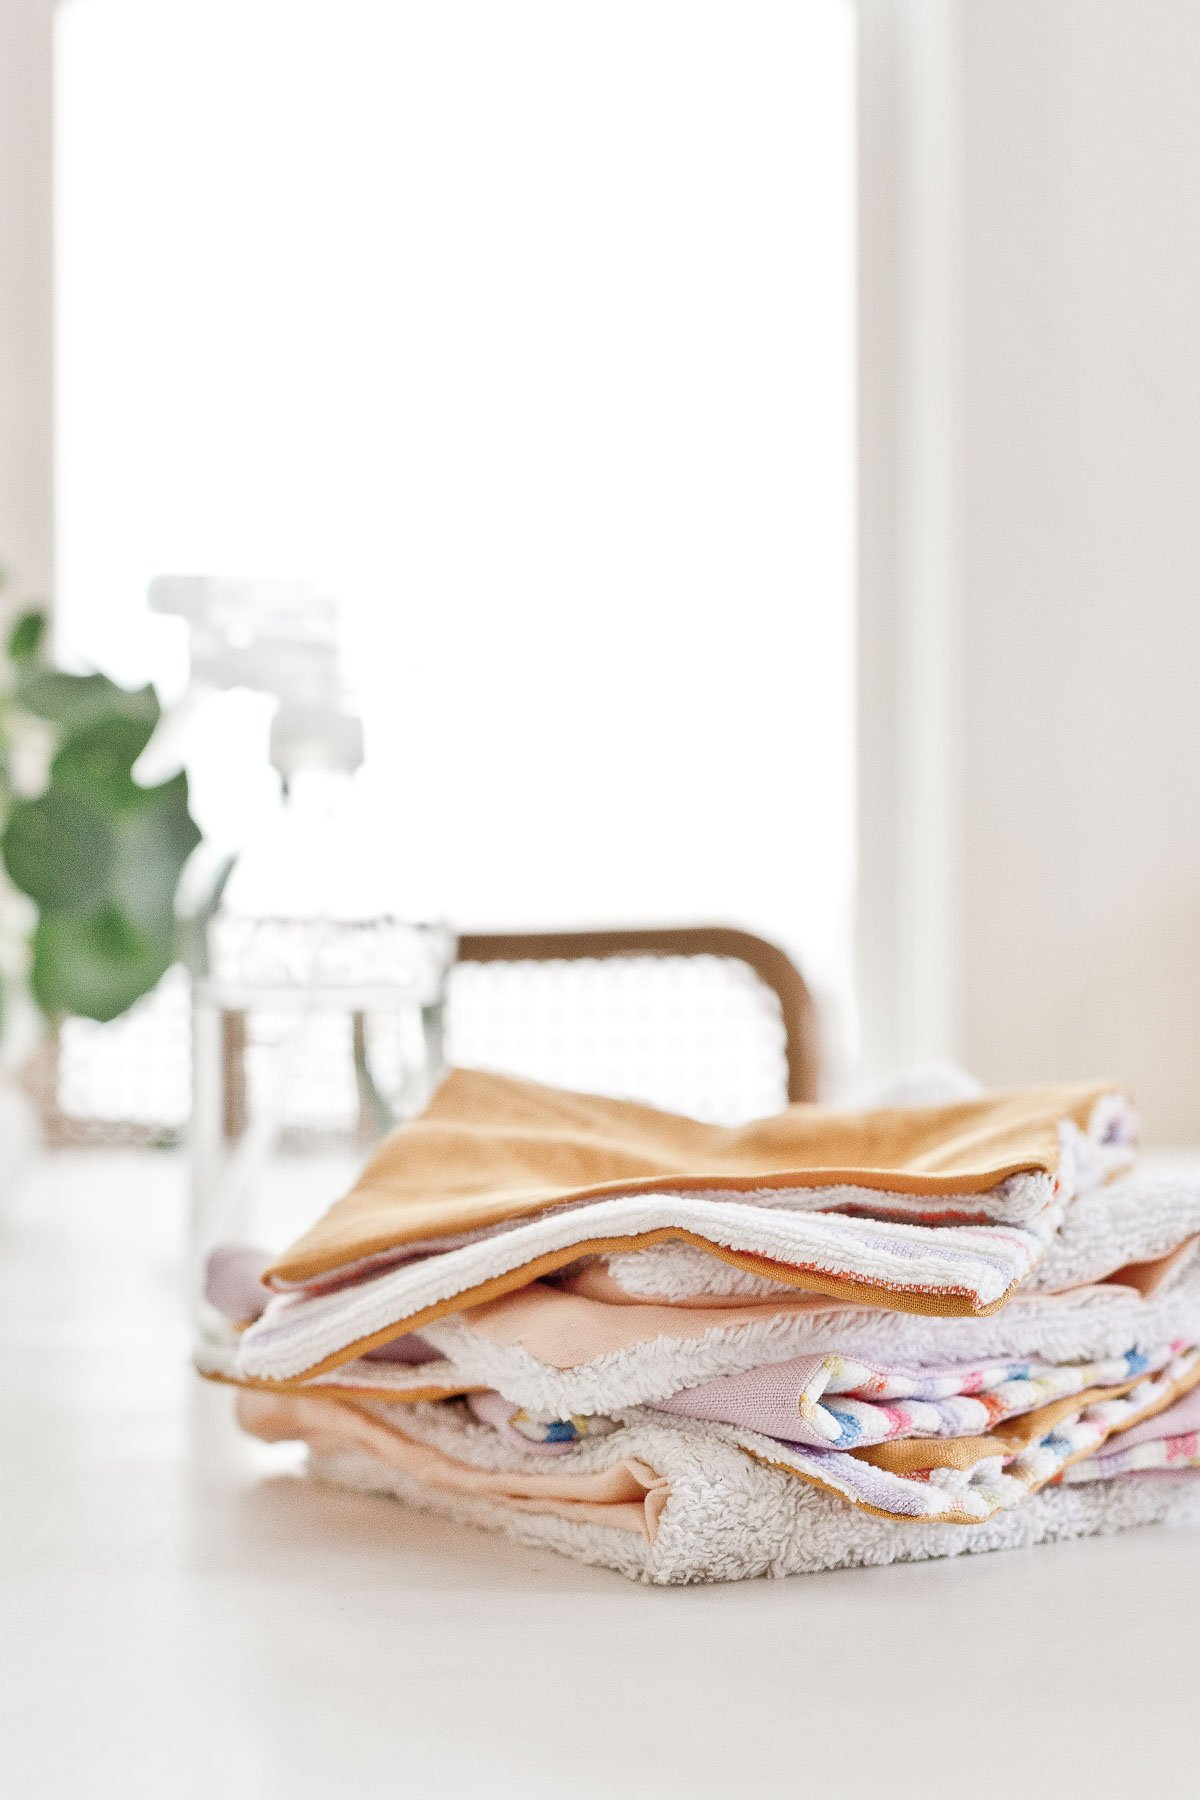 A stack of unpaper towels made of fabric scraps in 15 minutes or less.